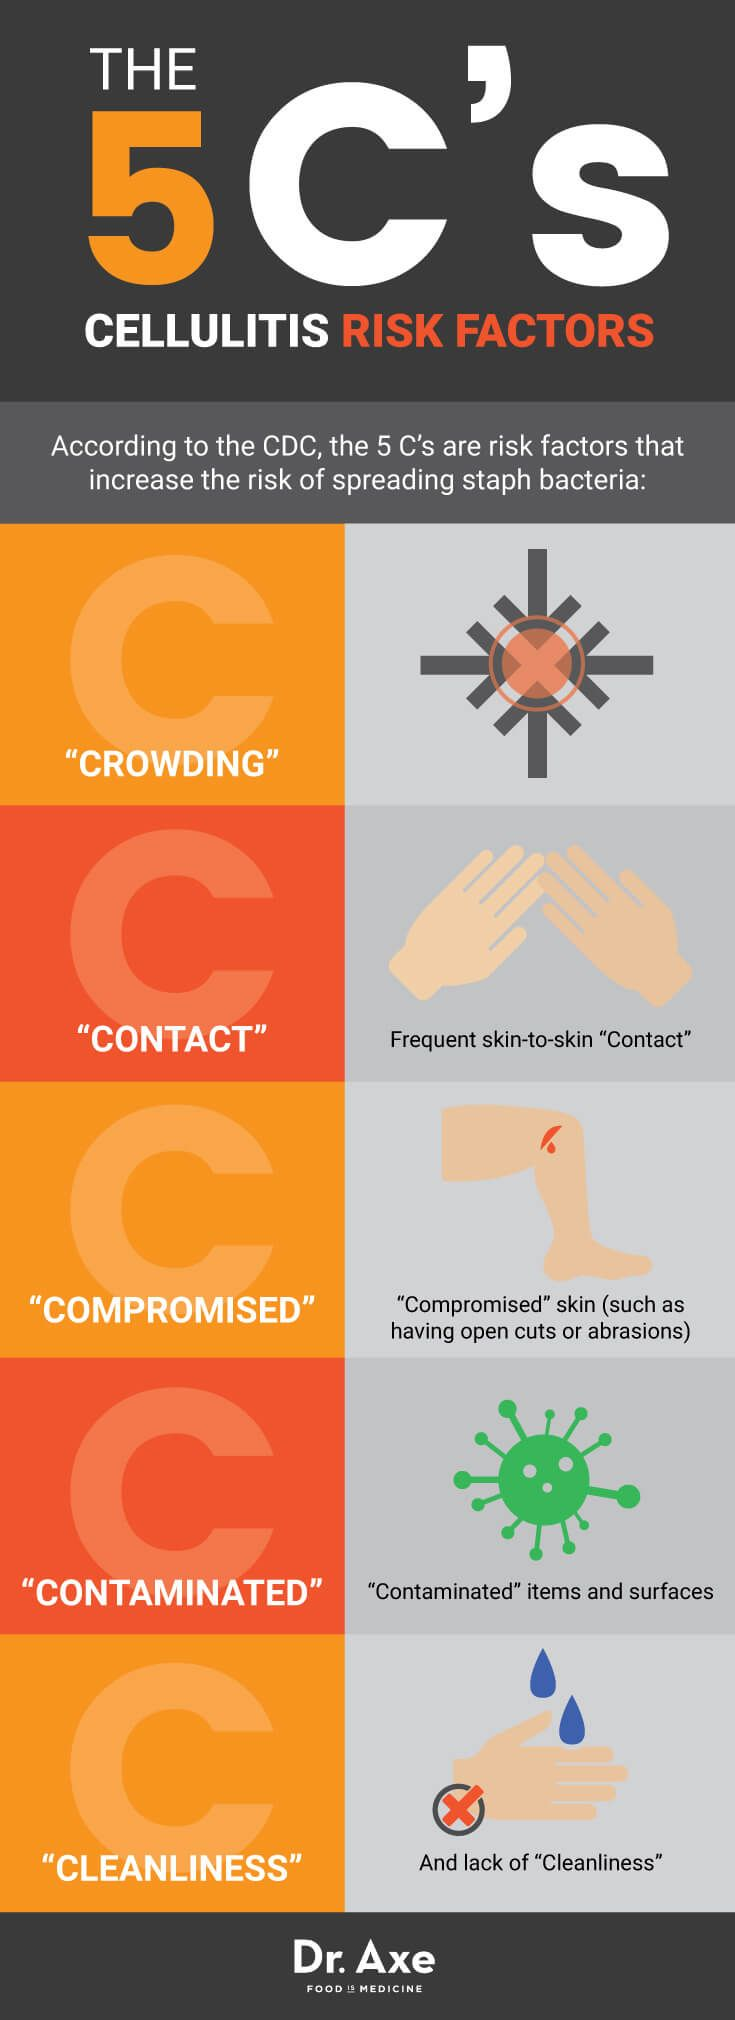 The 19 best Cellulitis images on Pinterest | Health, Cellulite and ...